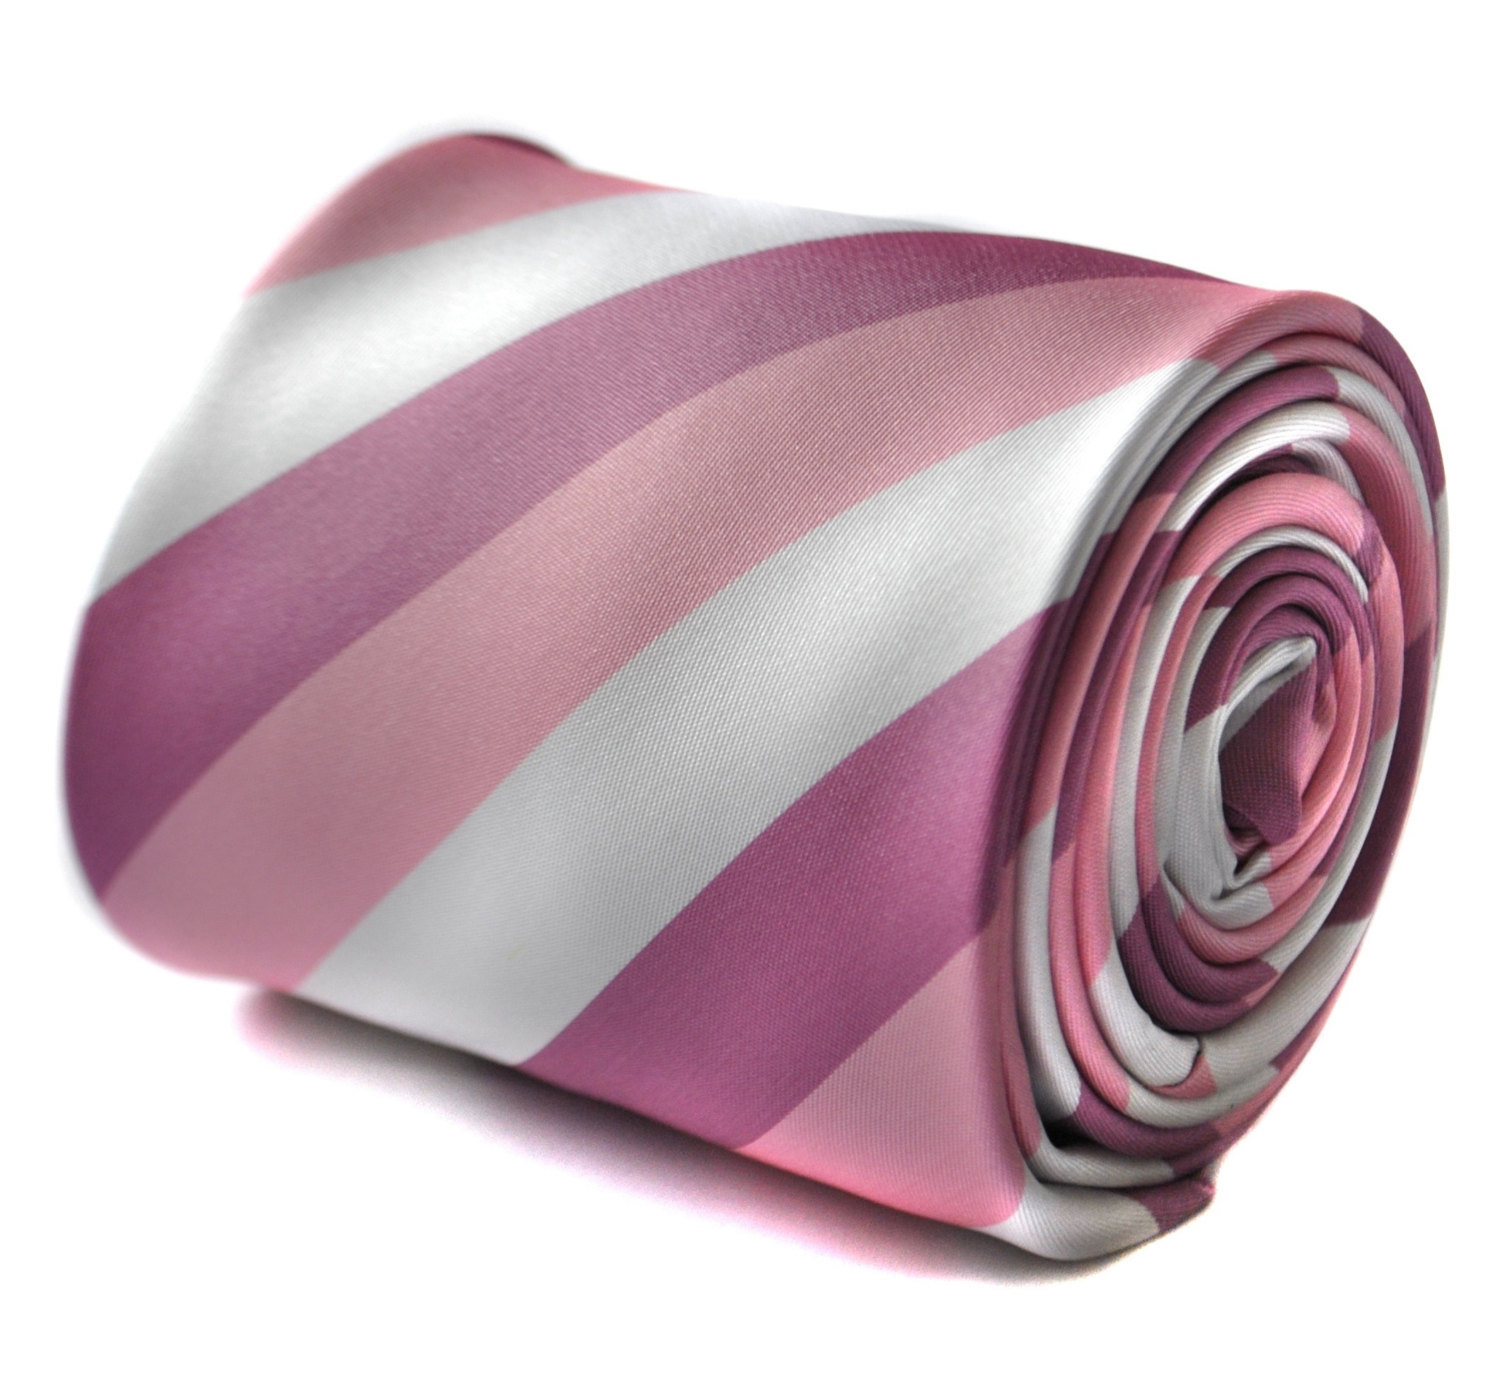 pink, purple and white striped tie with signature floral design to the rear by F